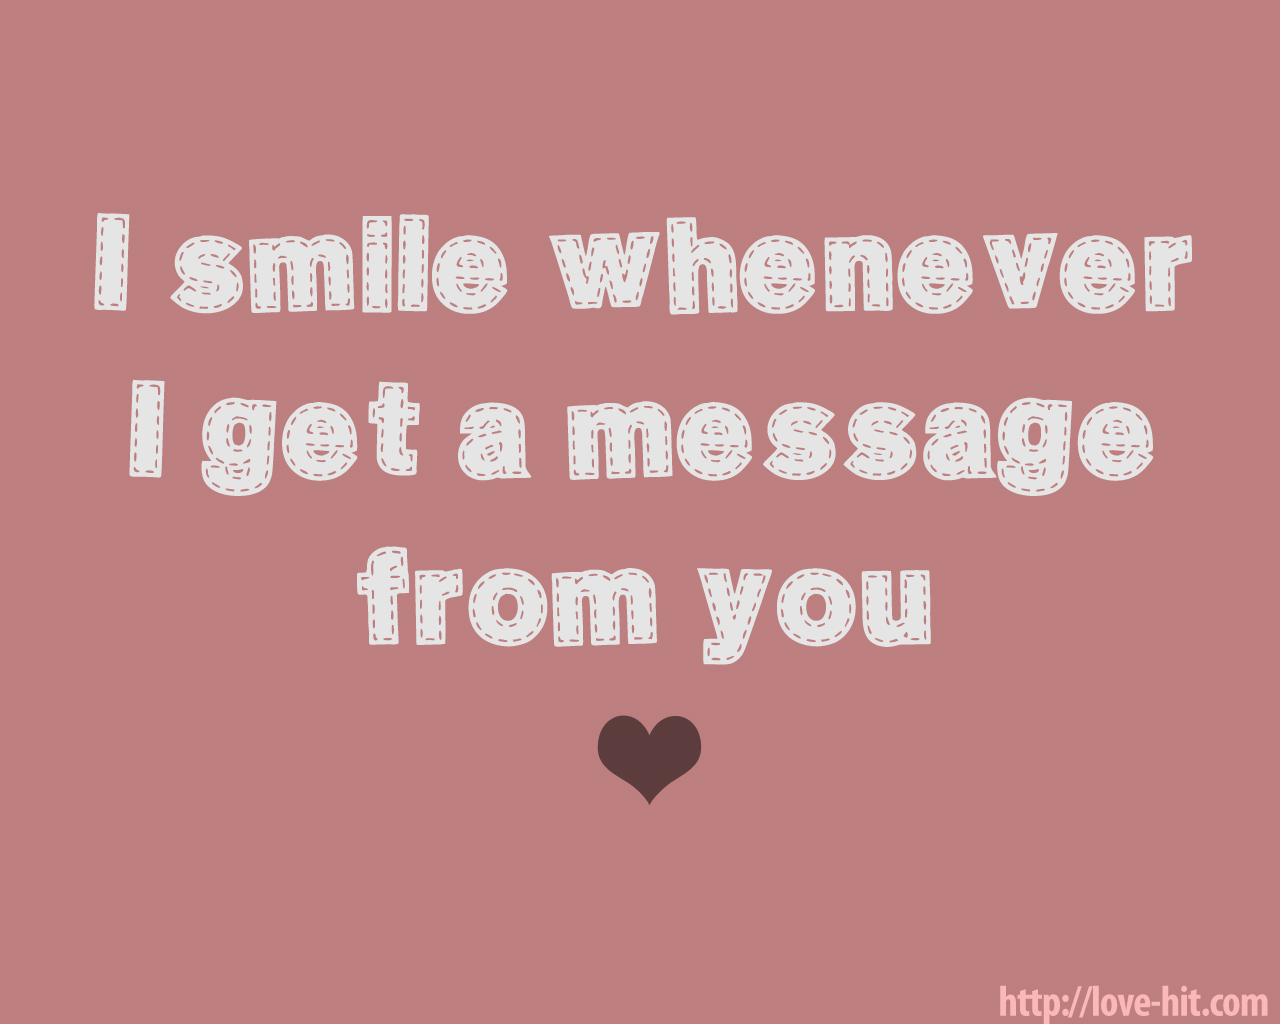 I smile whenever I get a message from you